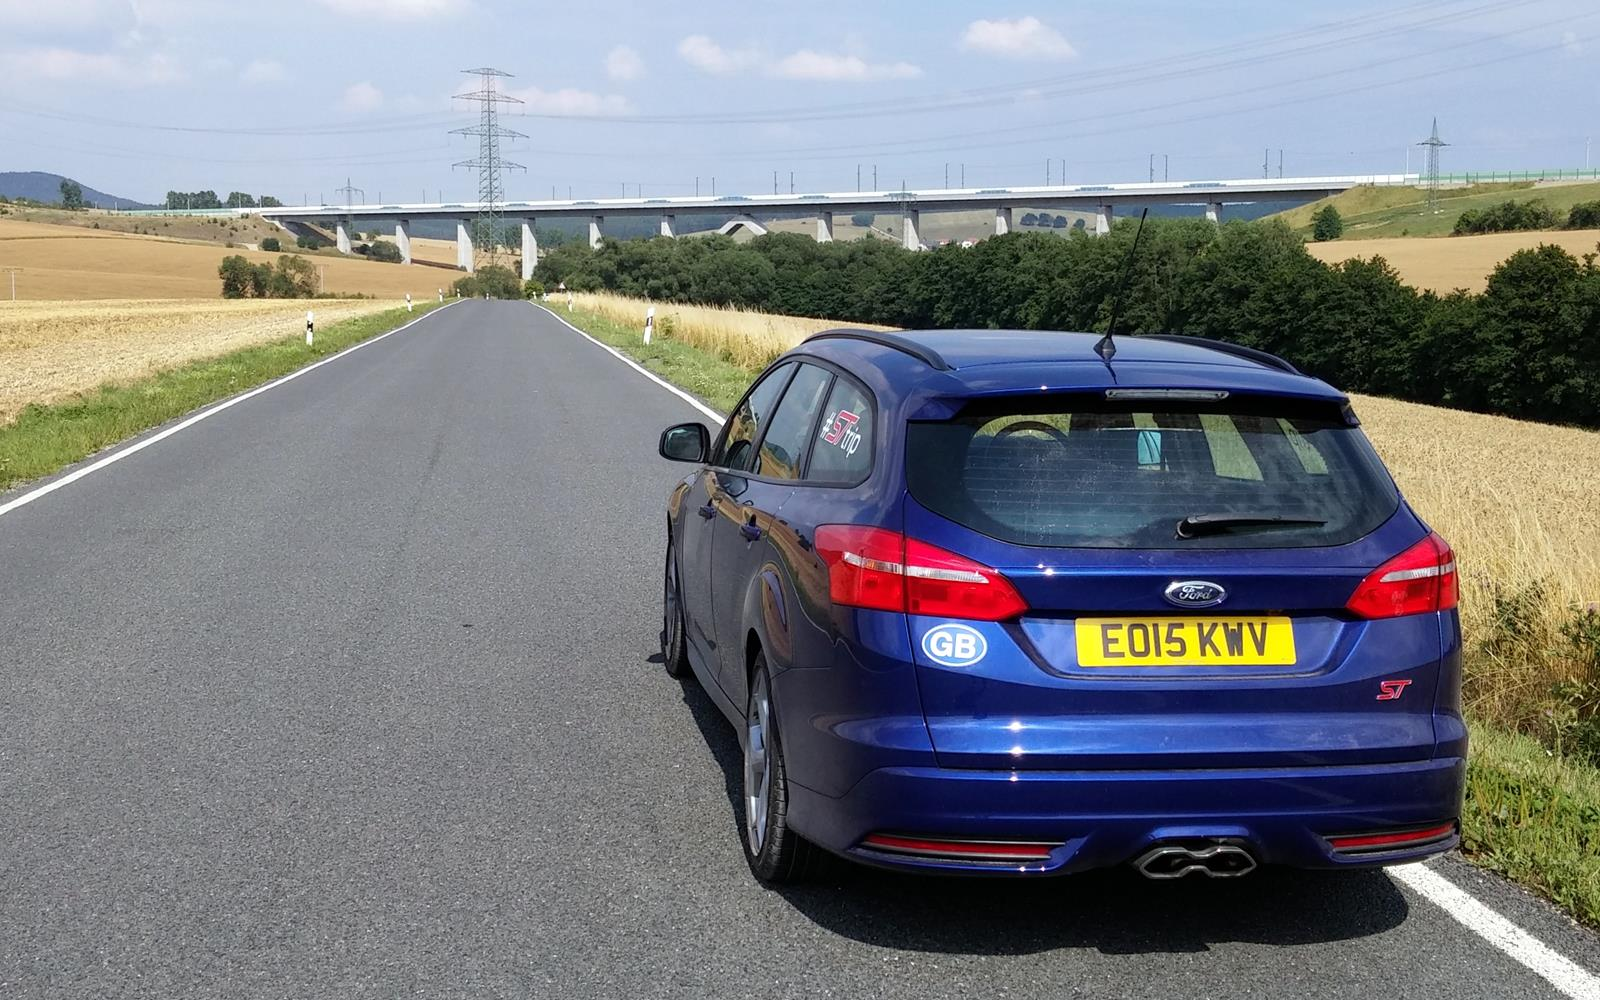 Ford Focus ST Road Trip with Jonny Edge 2015 1